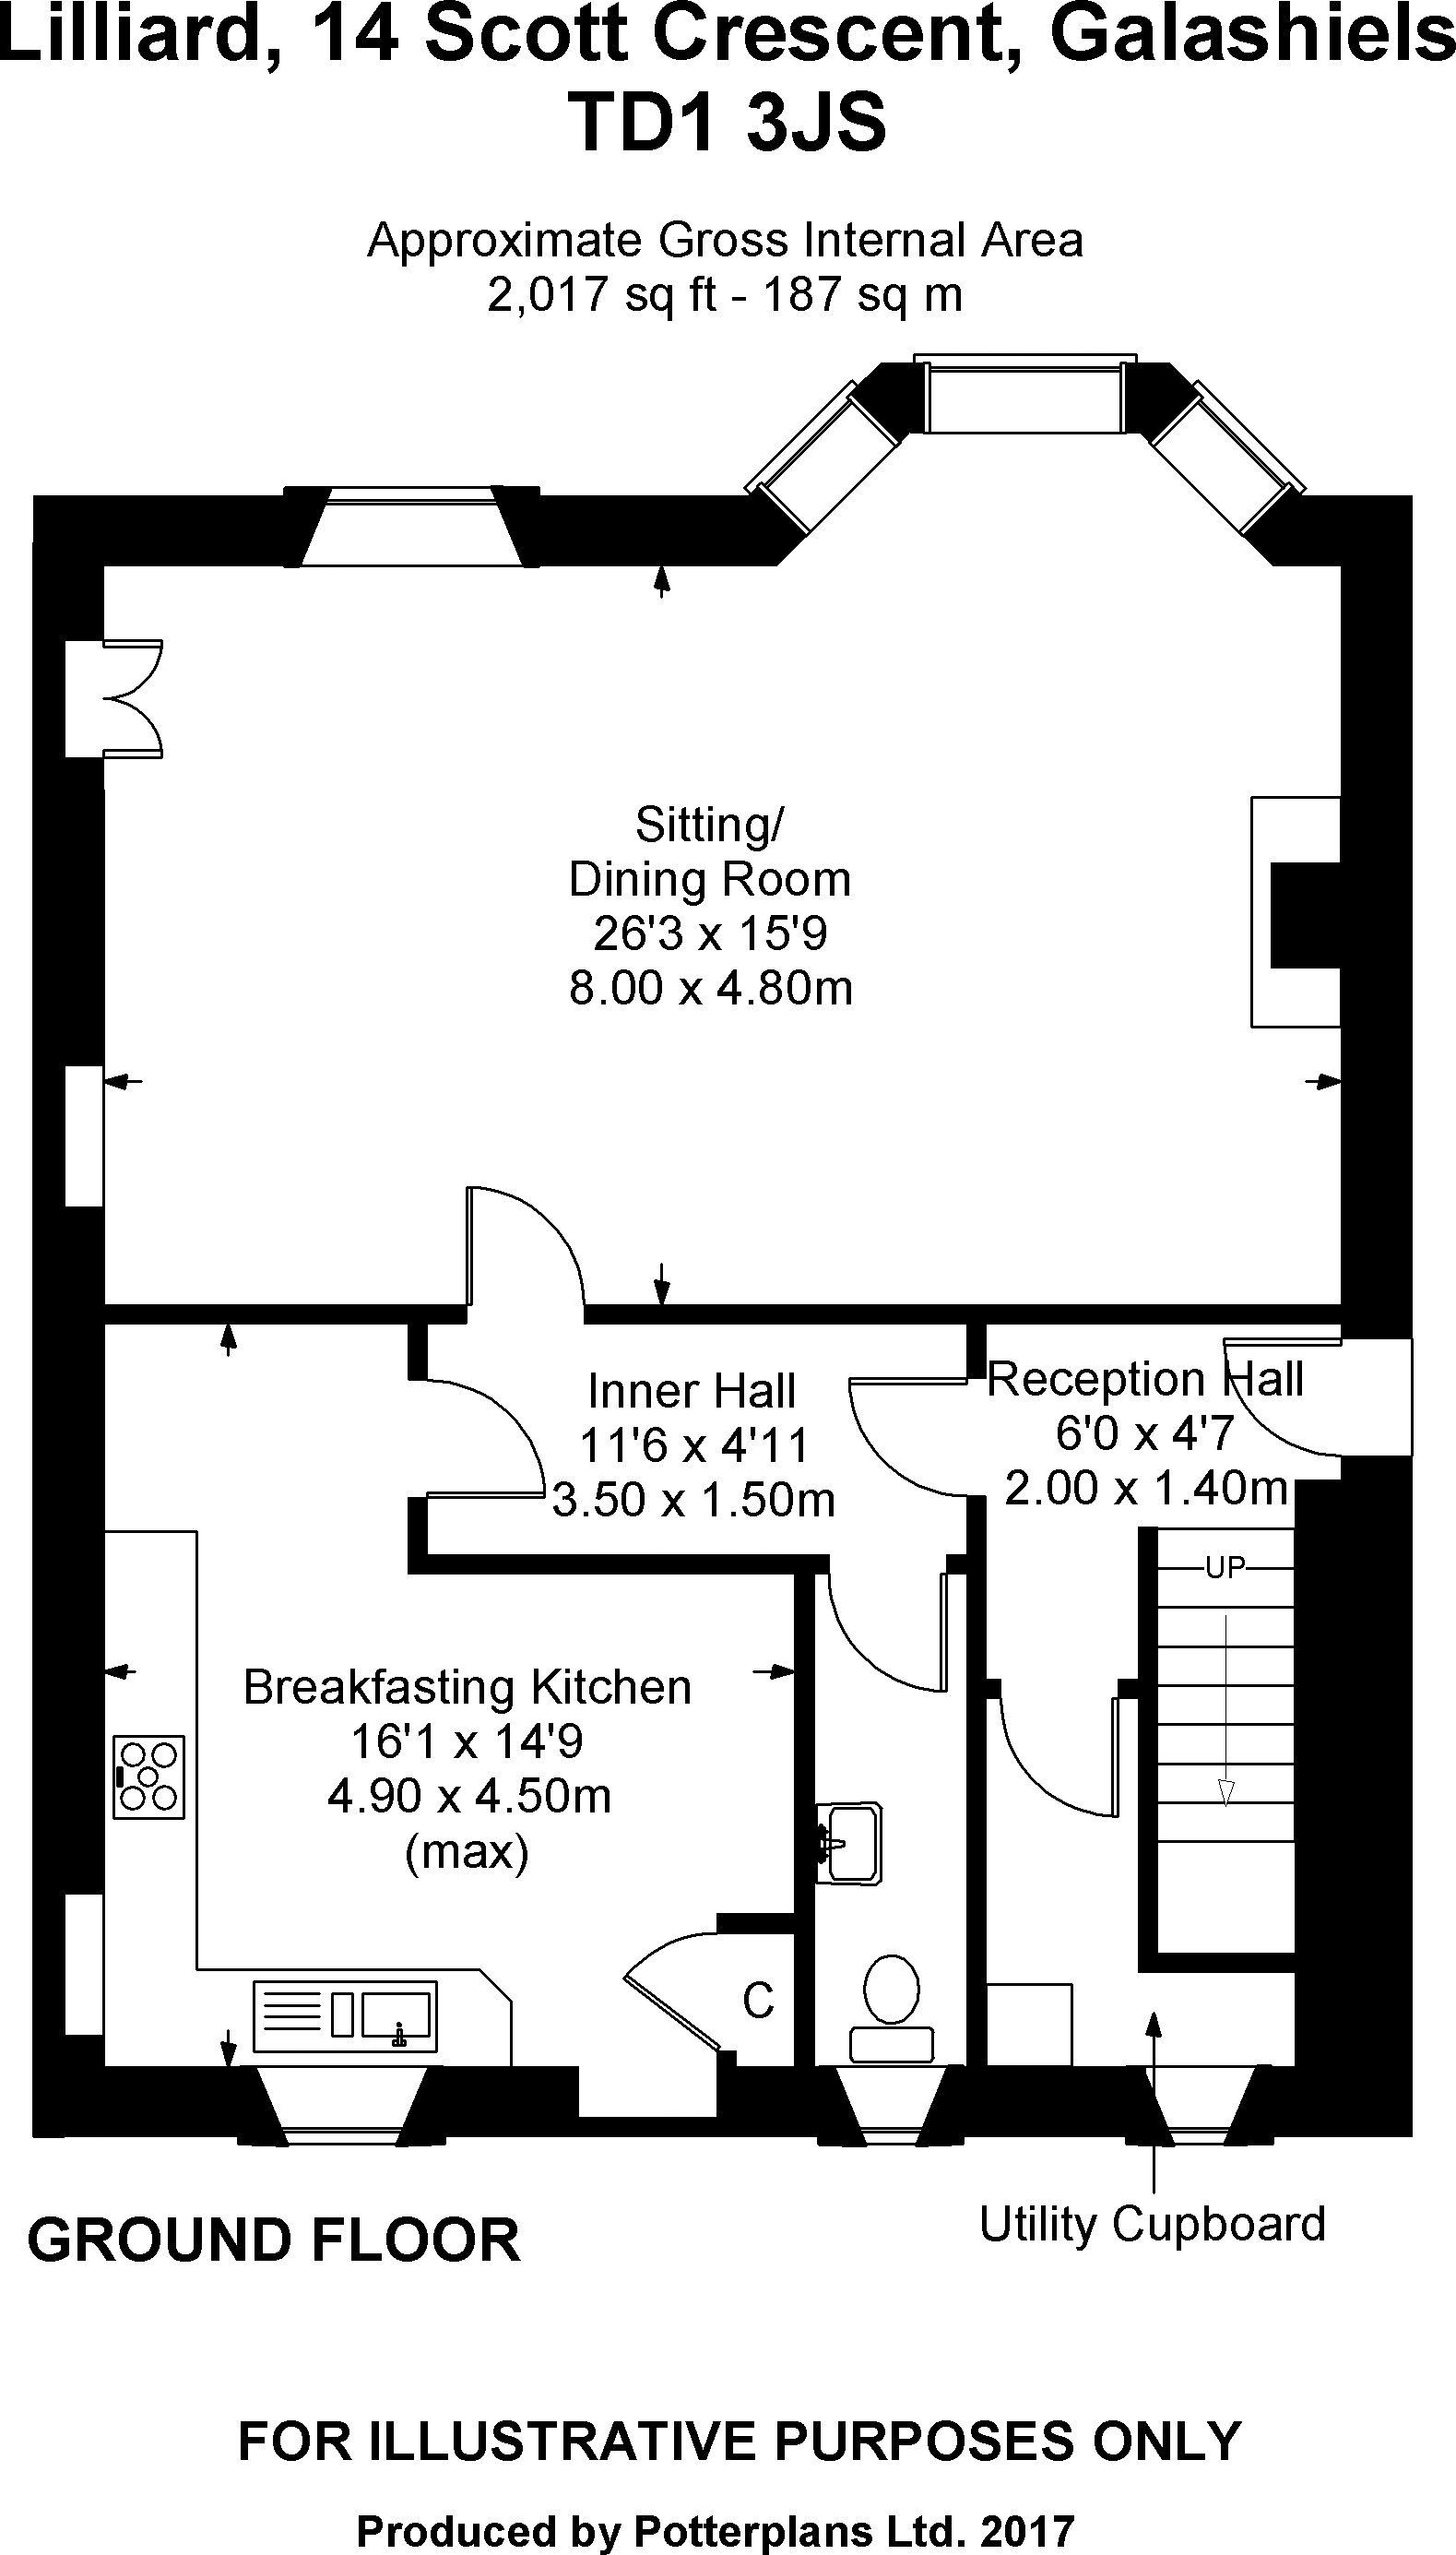 Lilliard Ground Floor